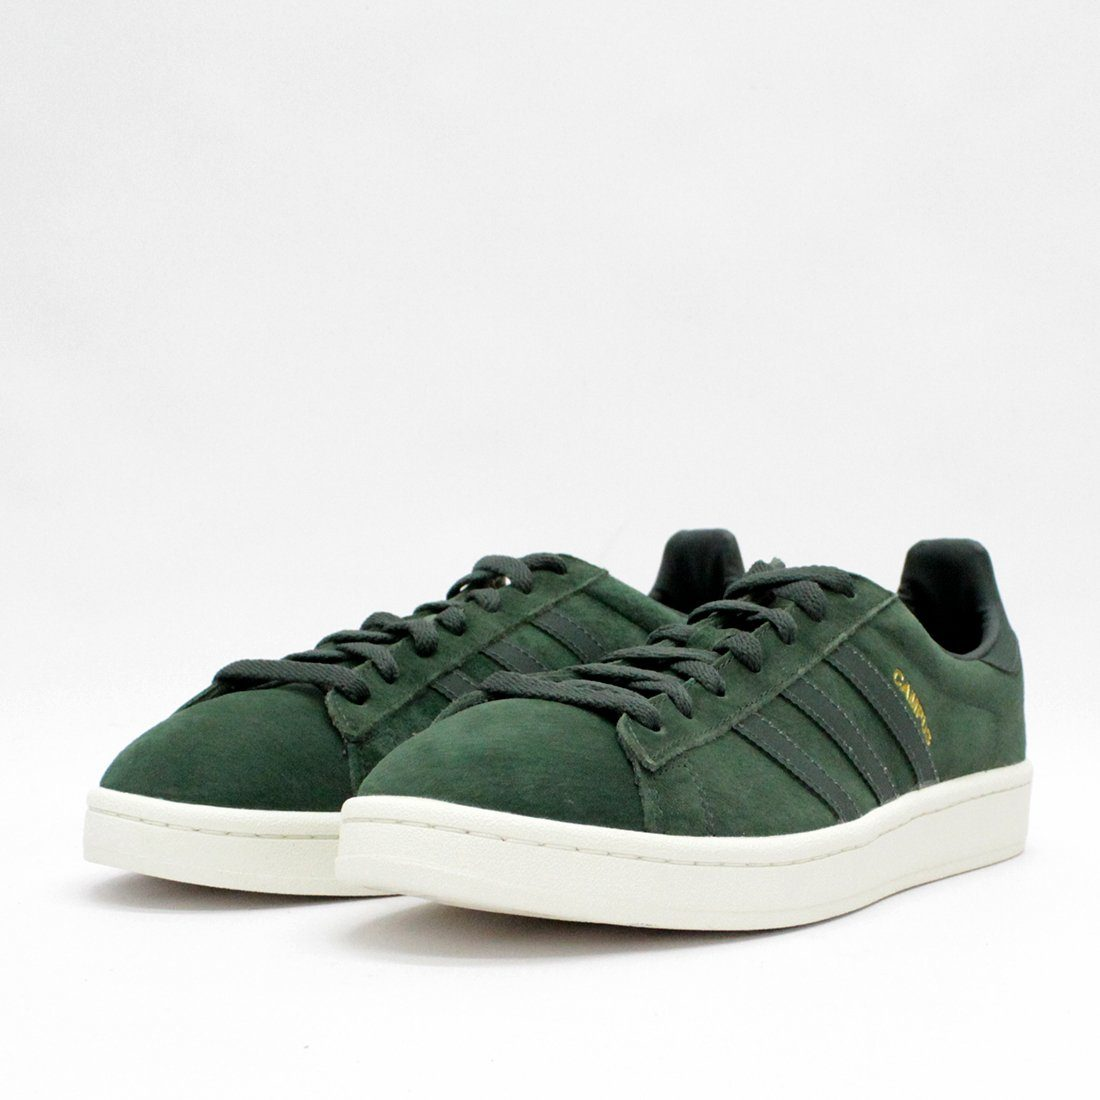 Adidas Originals Campus Green BZ0074